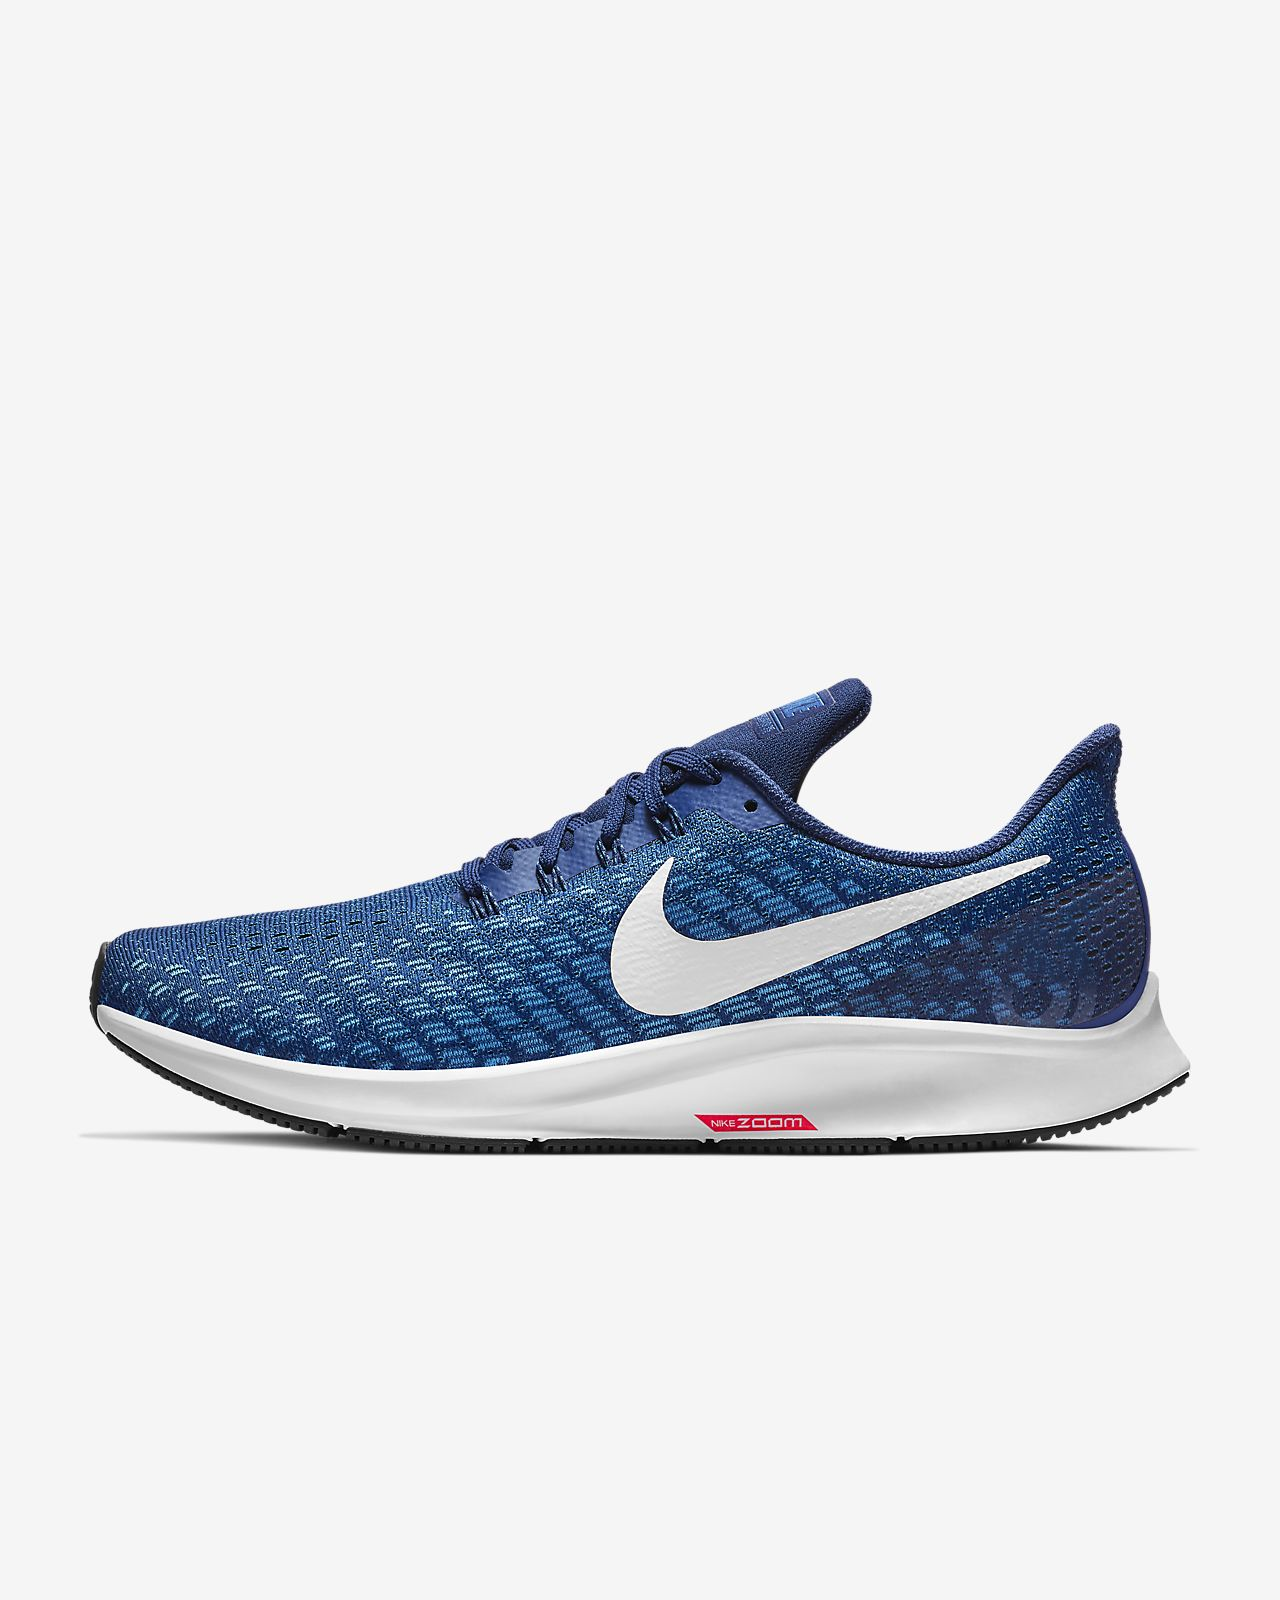 513e0faa57d Nike Air Zoom Pegasus 35 Men s Running Shoe. Nike.com CA